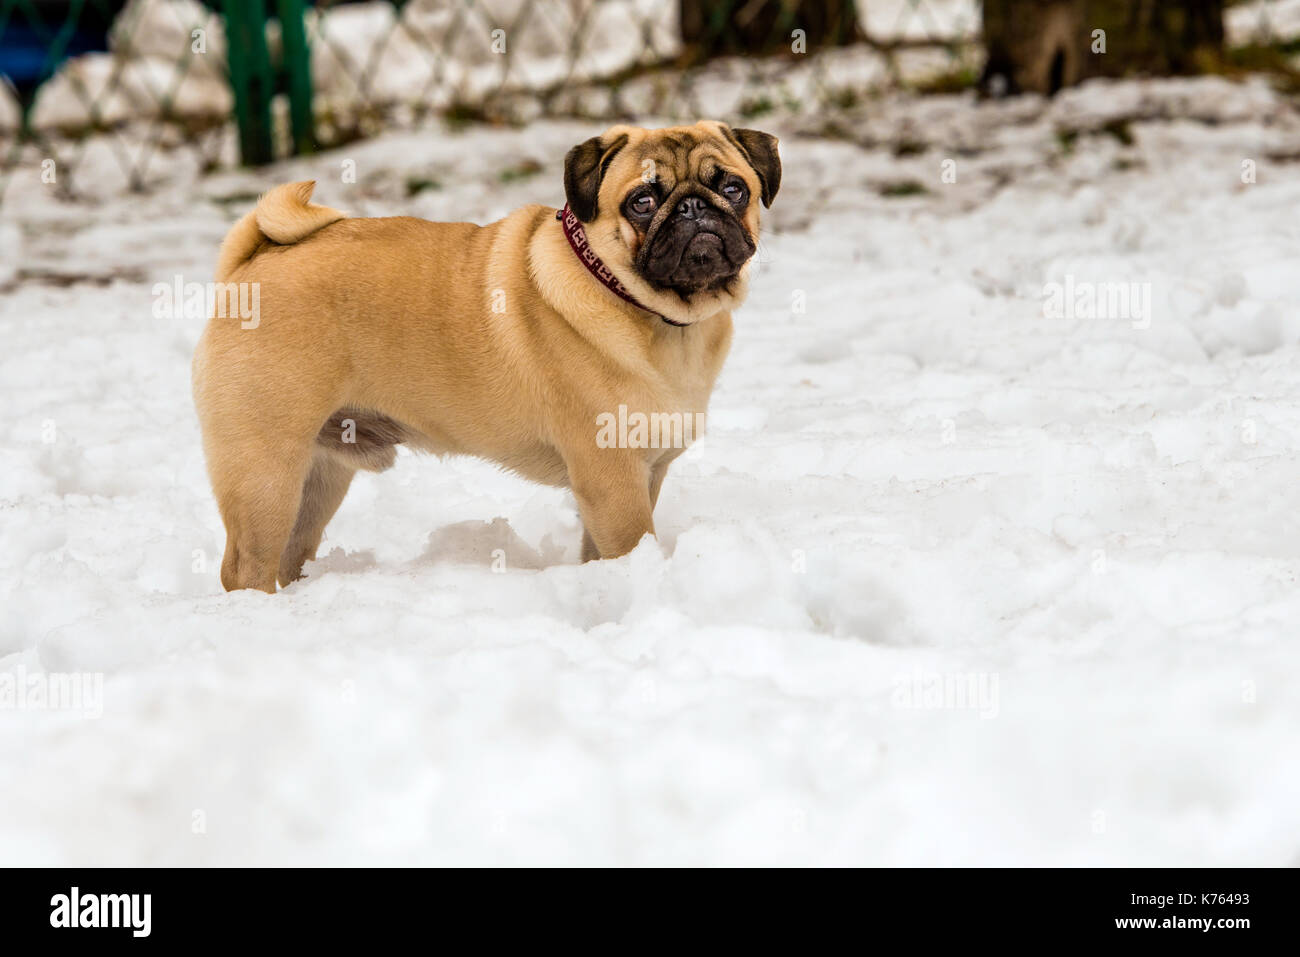 Pug in snow.  Pug is in the snow in the park. Stock Photo